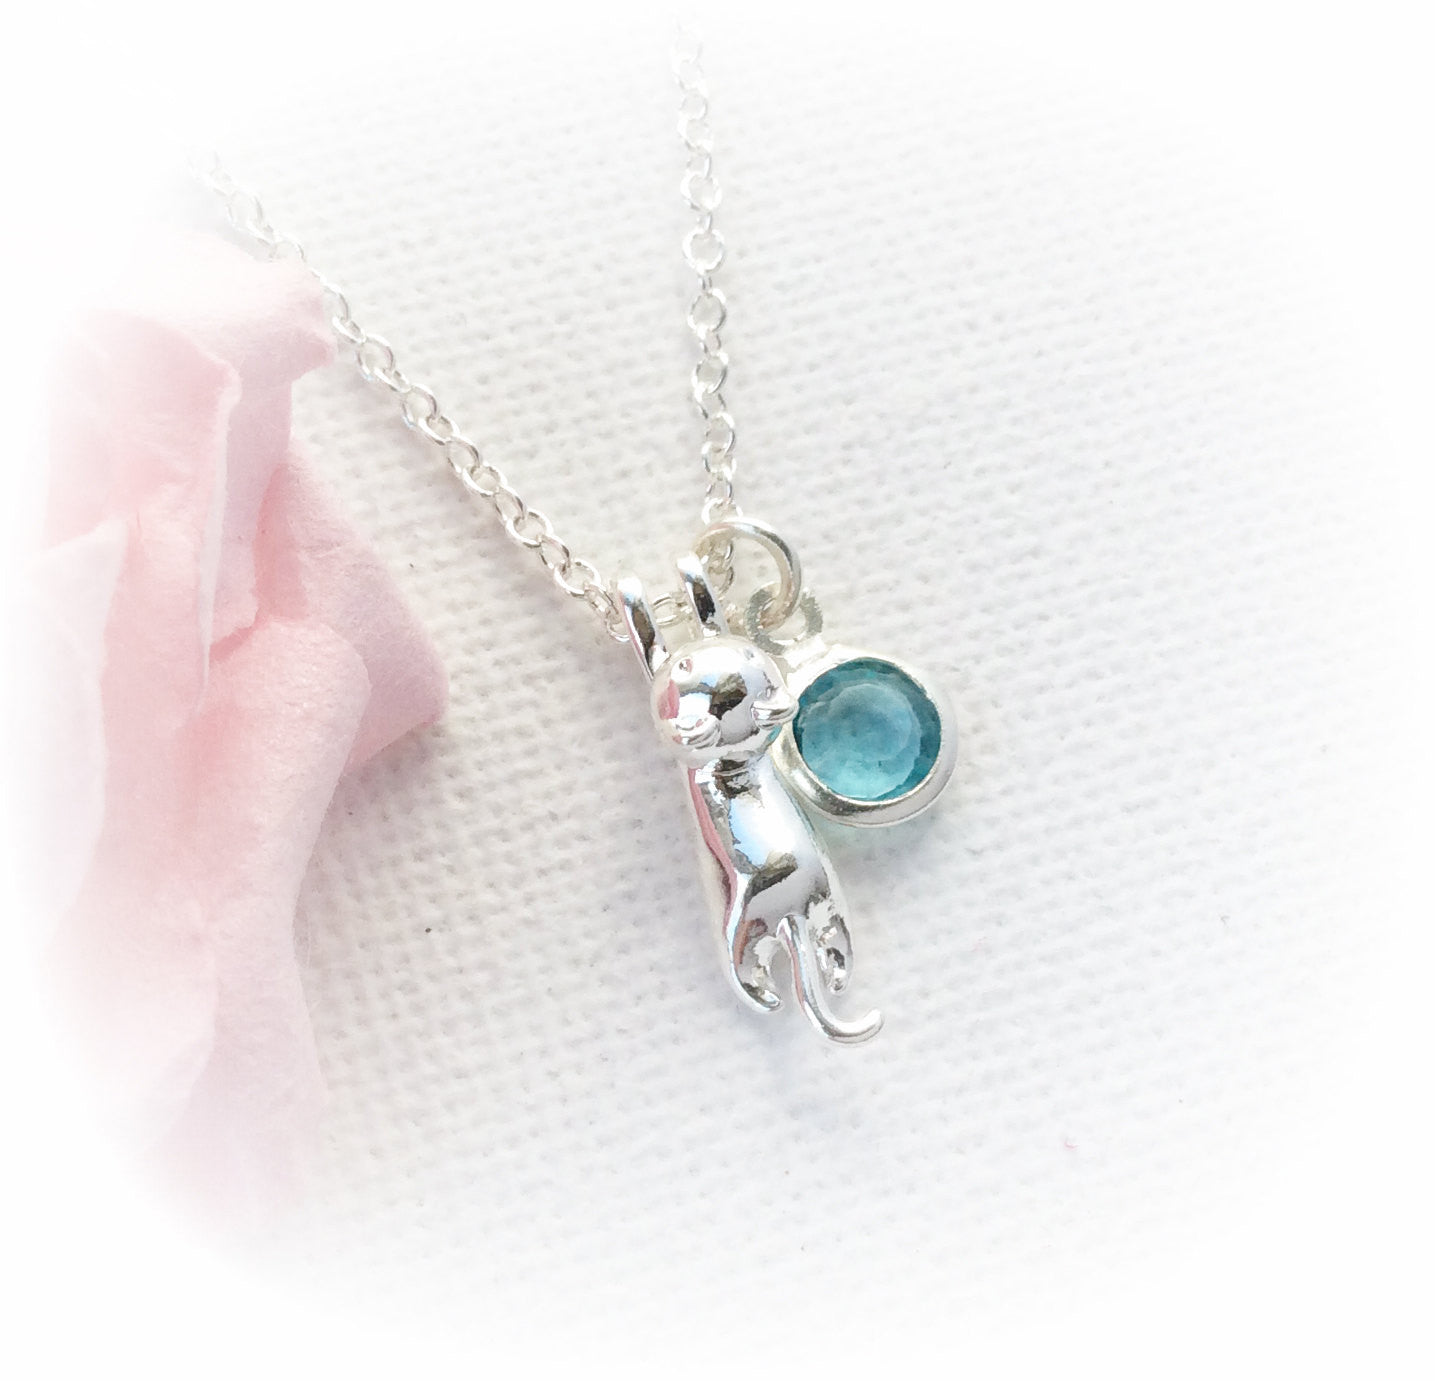 Silver cat necklace, birthstone charm custom necklace , Dress Necklaces - Statement Made Jewelry, Statement Made Jewellery  - 1